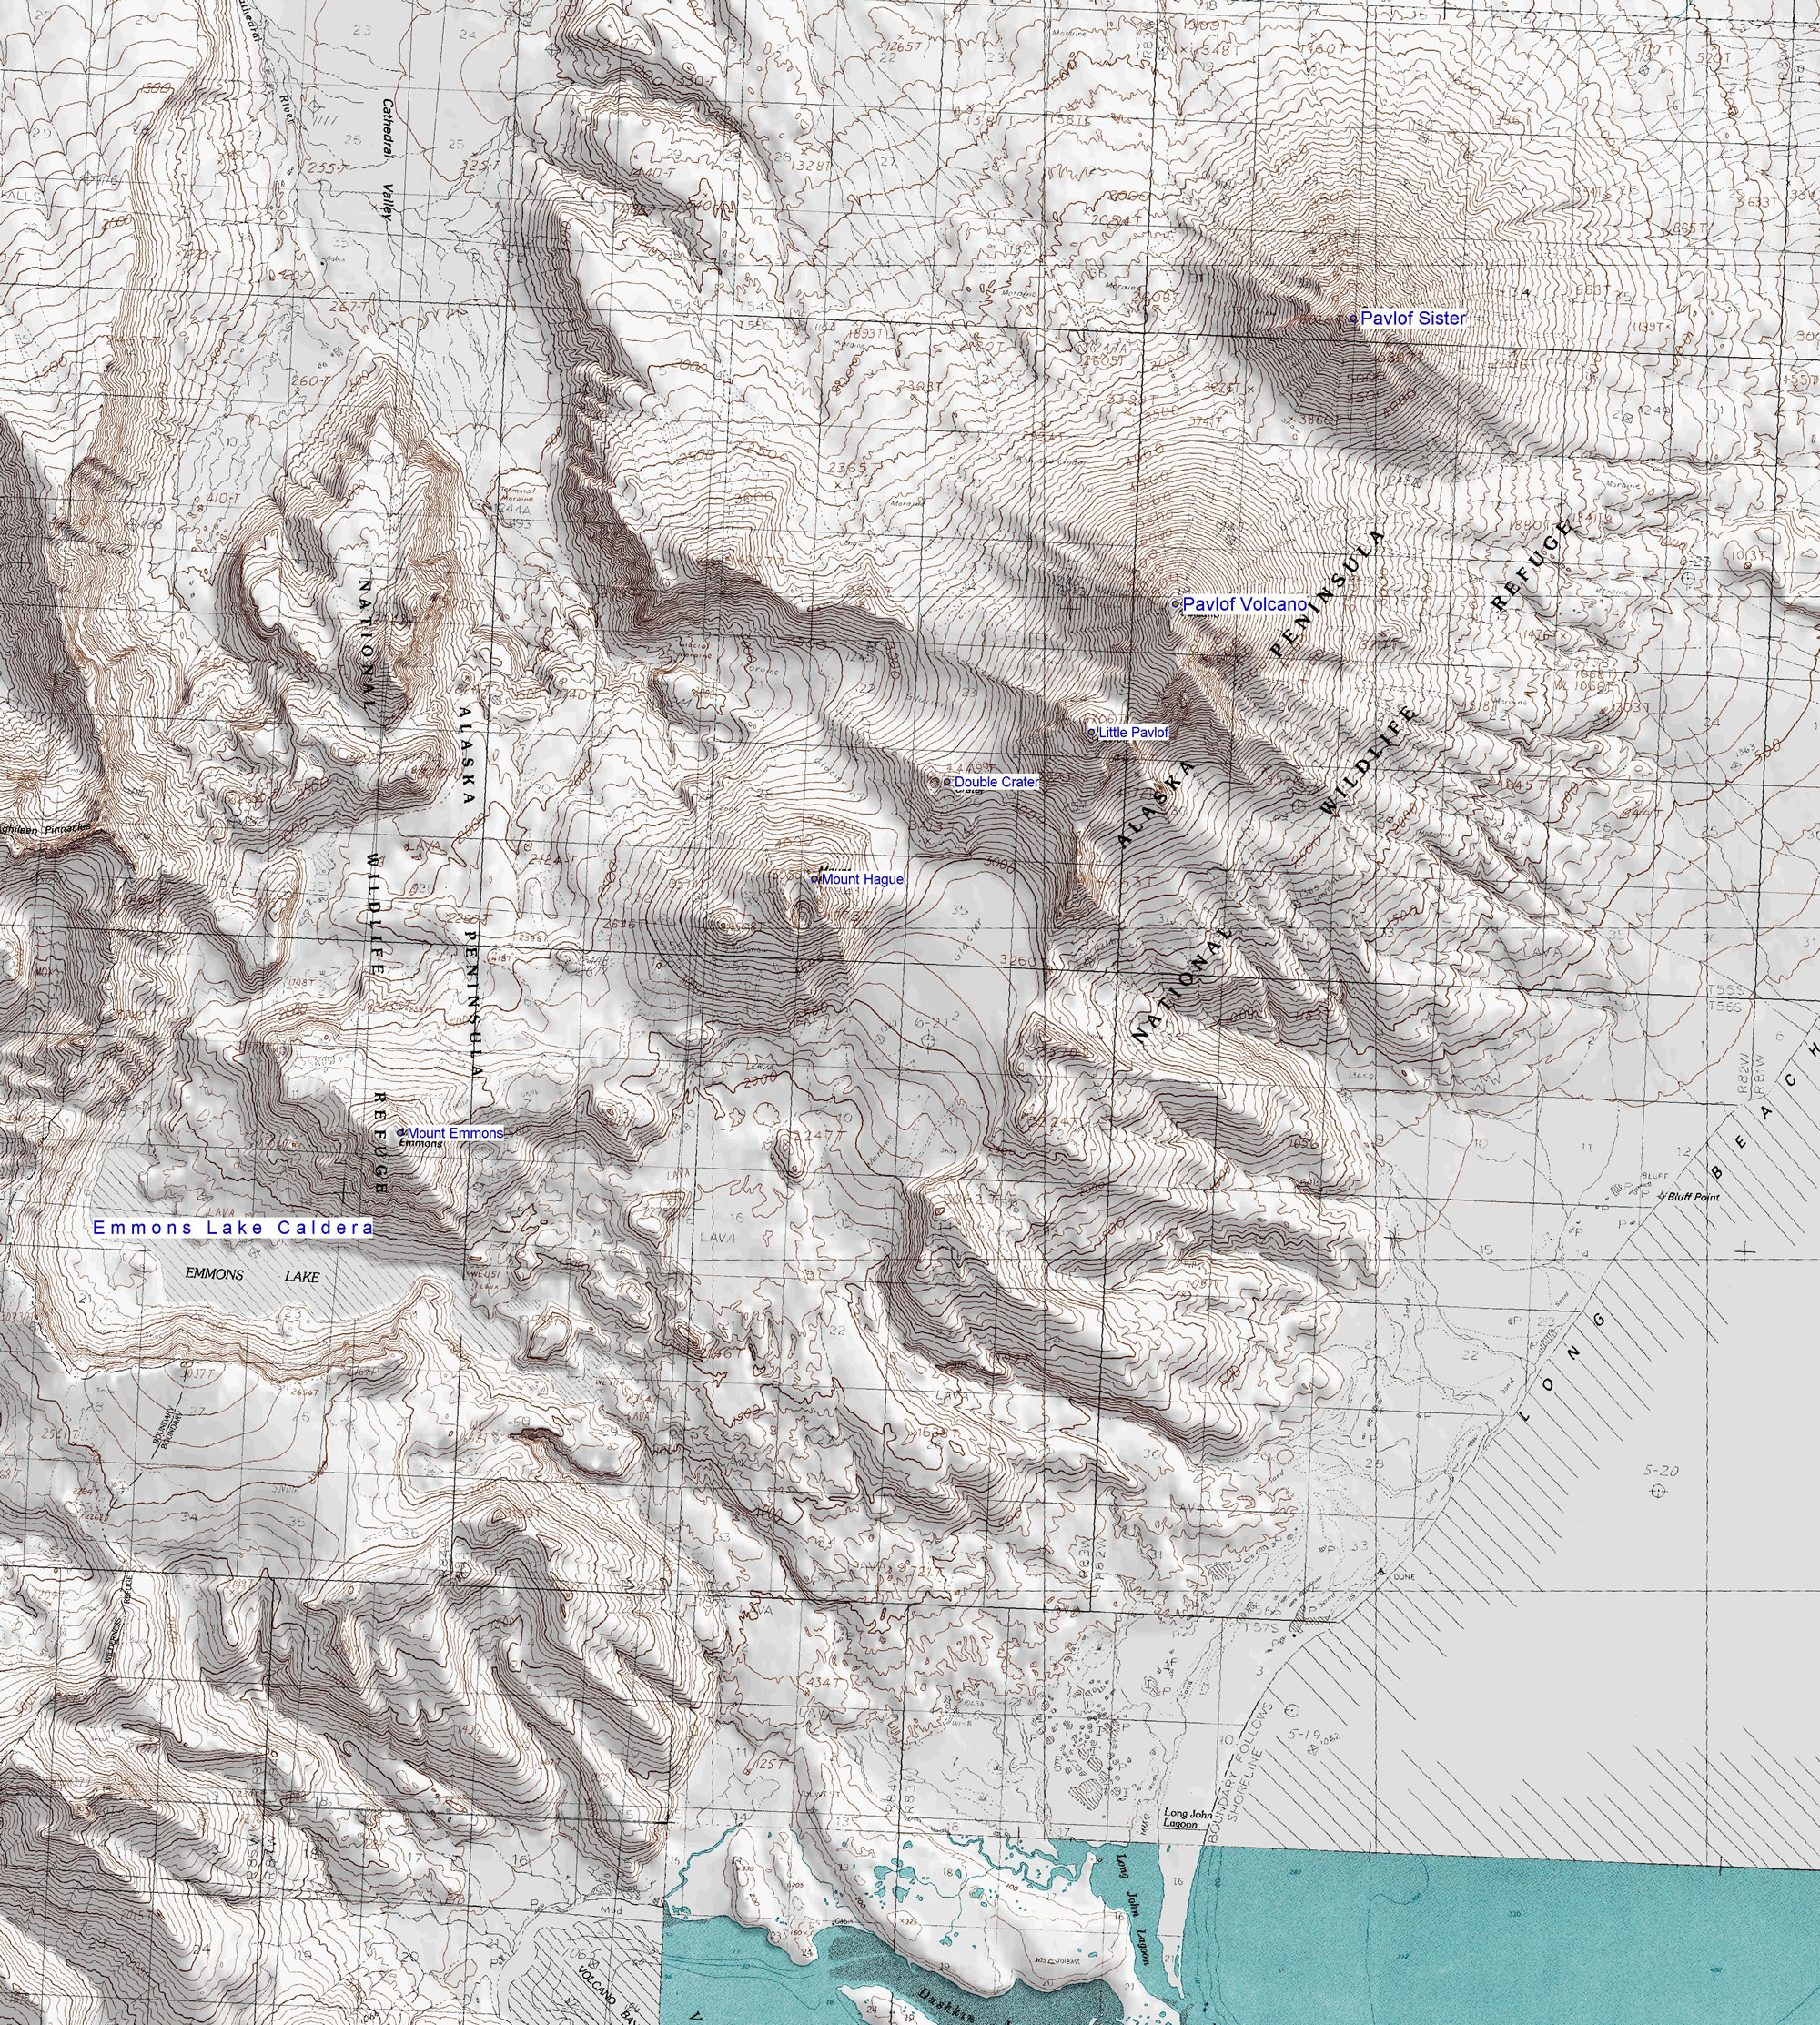 Pavlof Volcano One Of The Most Active Volcanoes In North America - Volcanoes in usa map